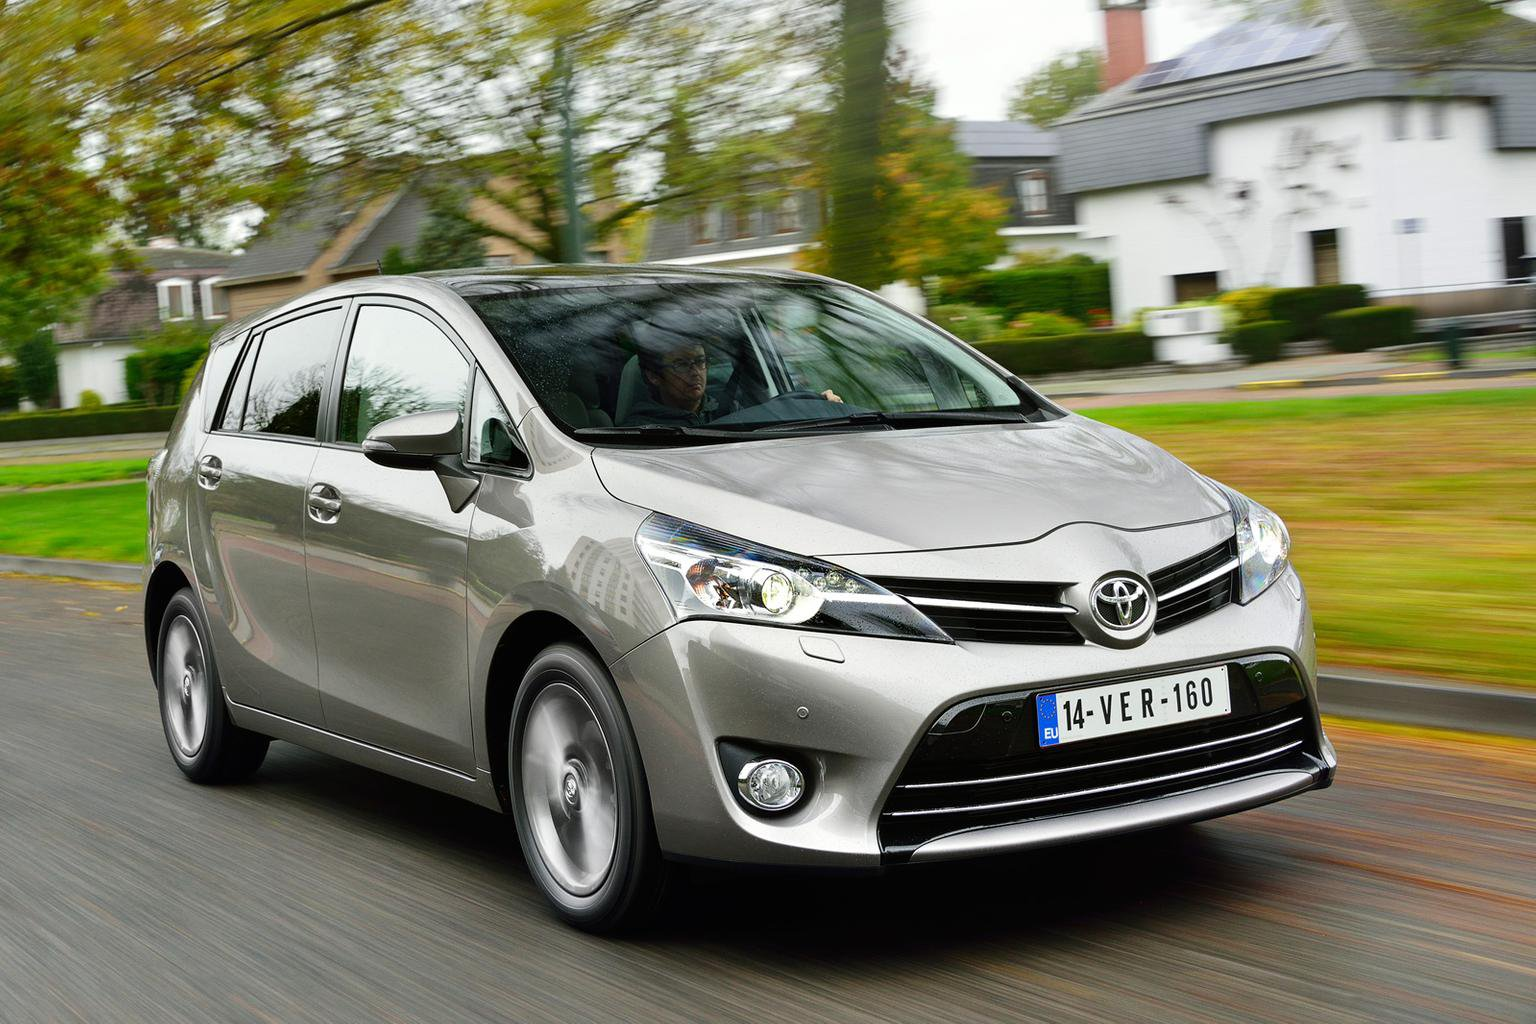 Toyota Verso gets engine and spec upgrades for 2014